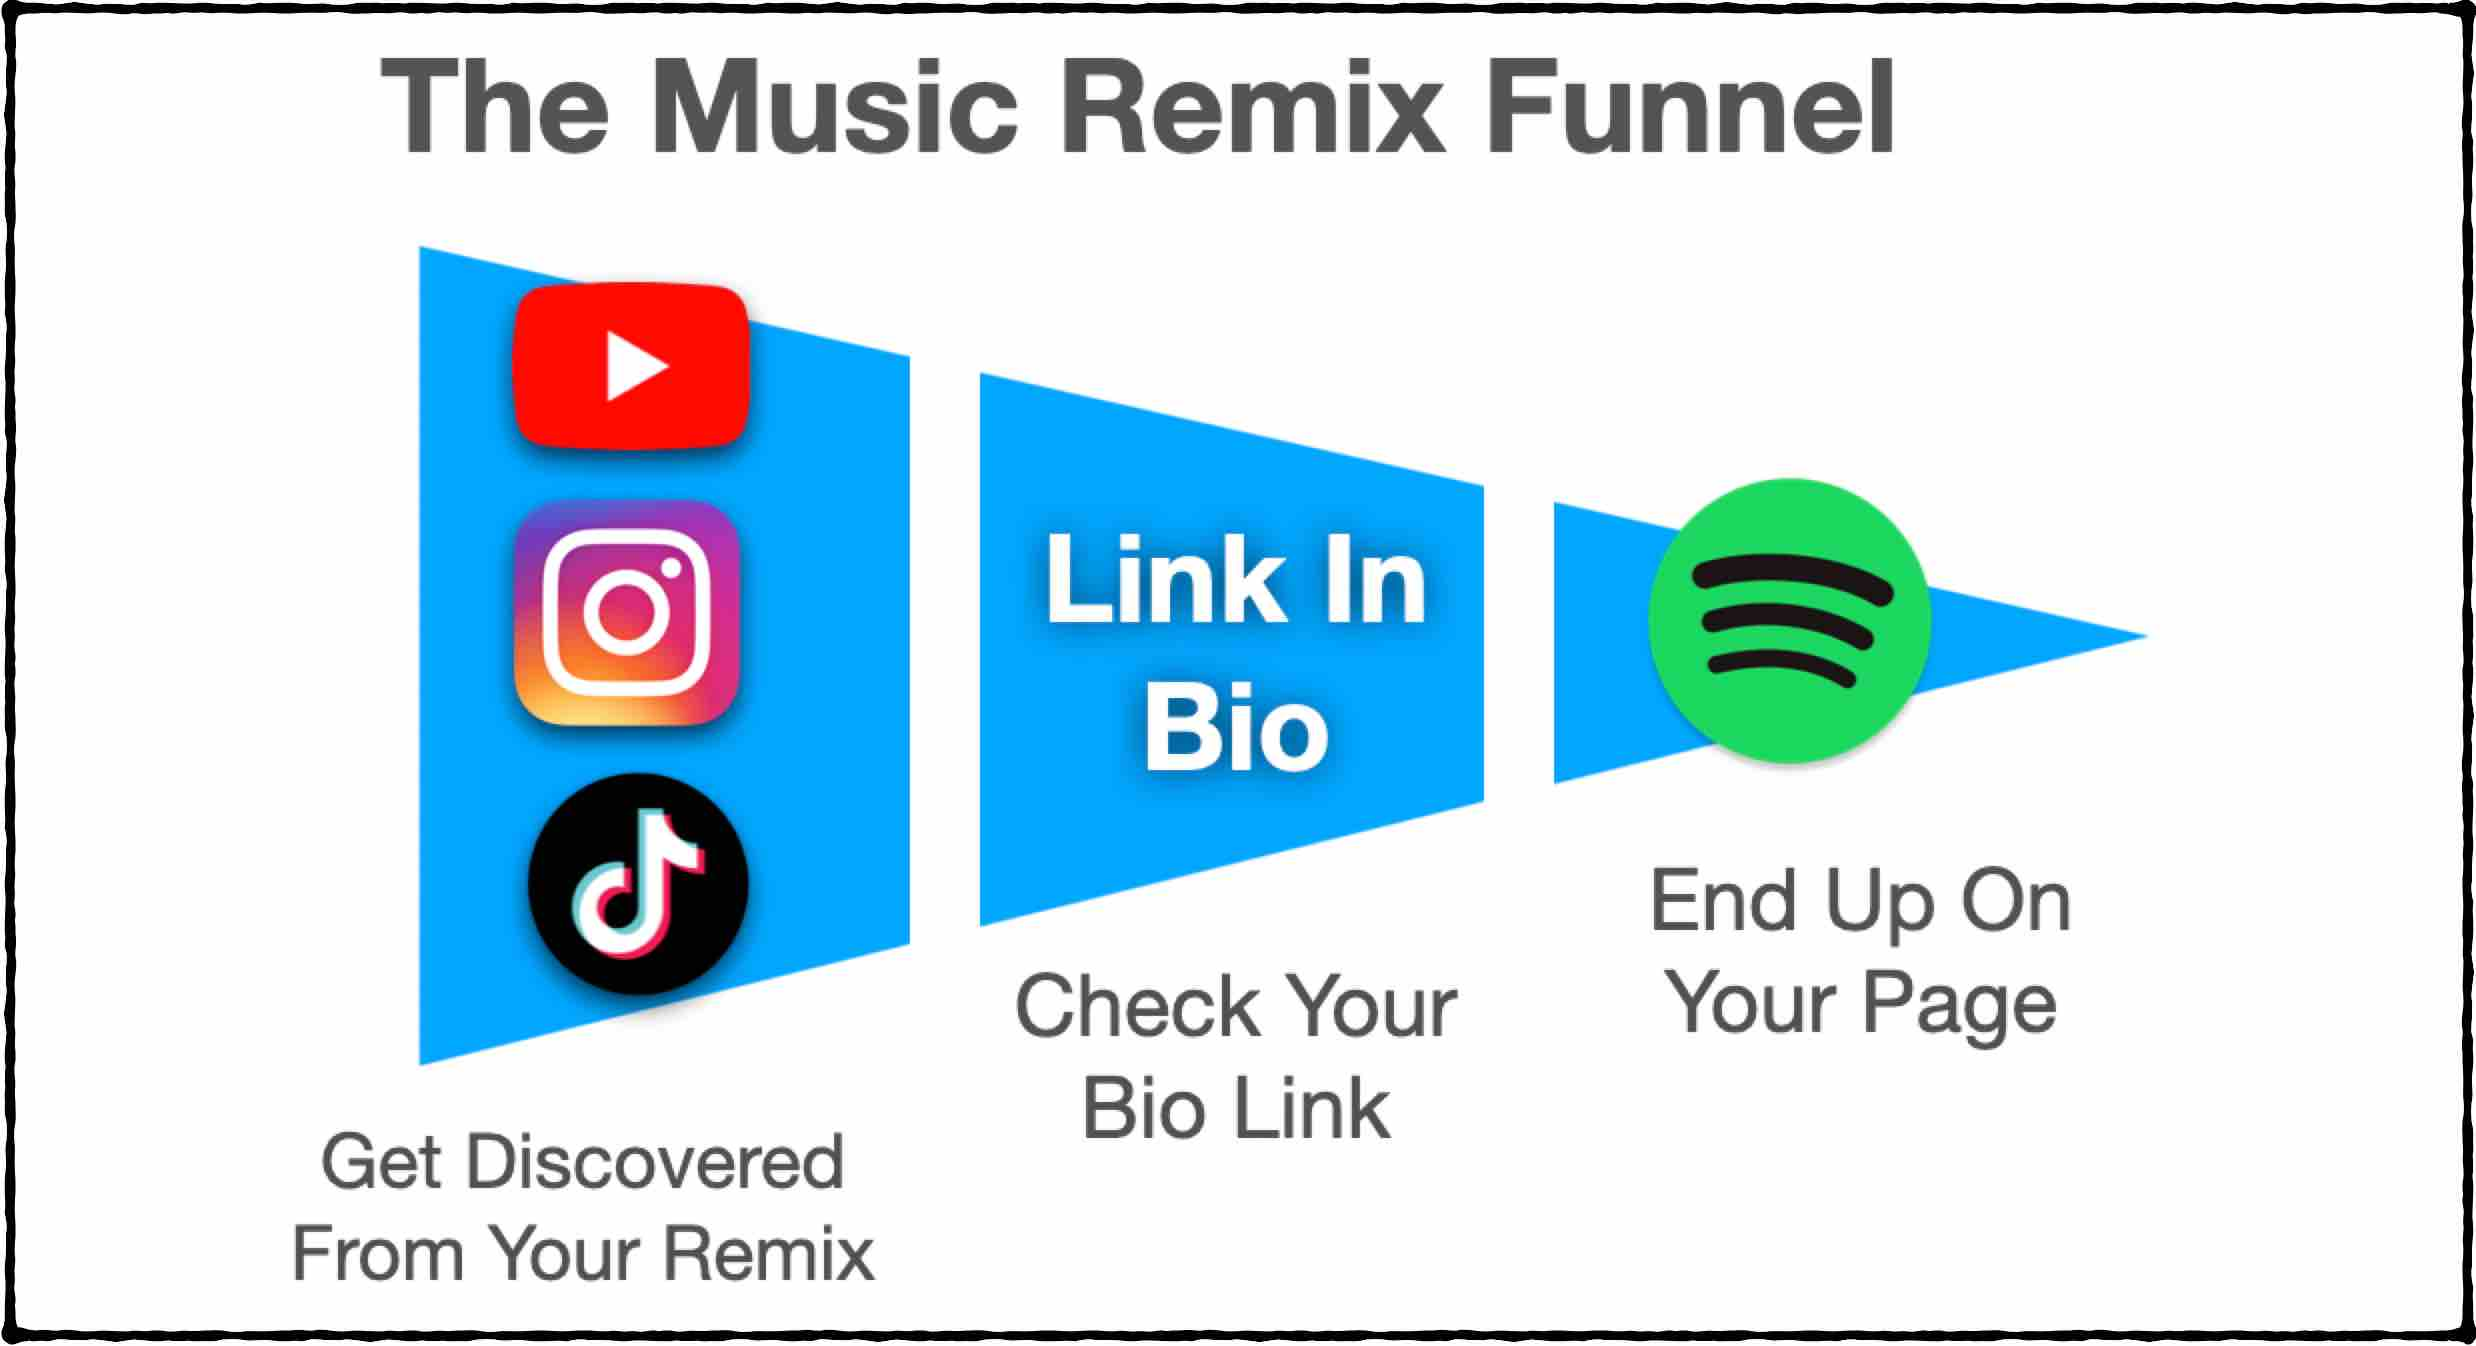 The music remix funnel